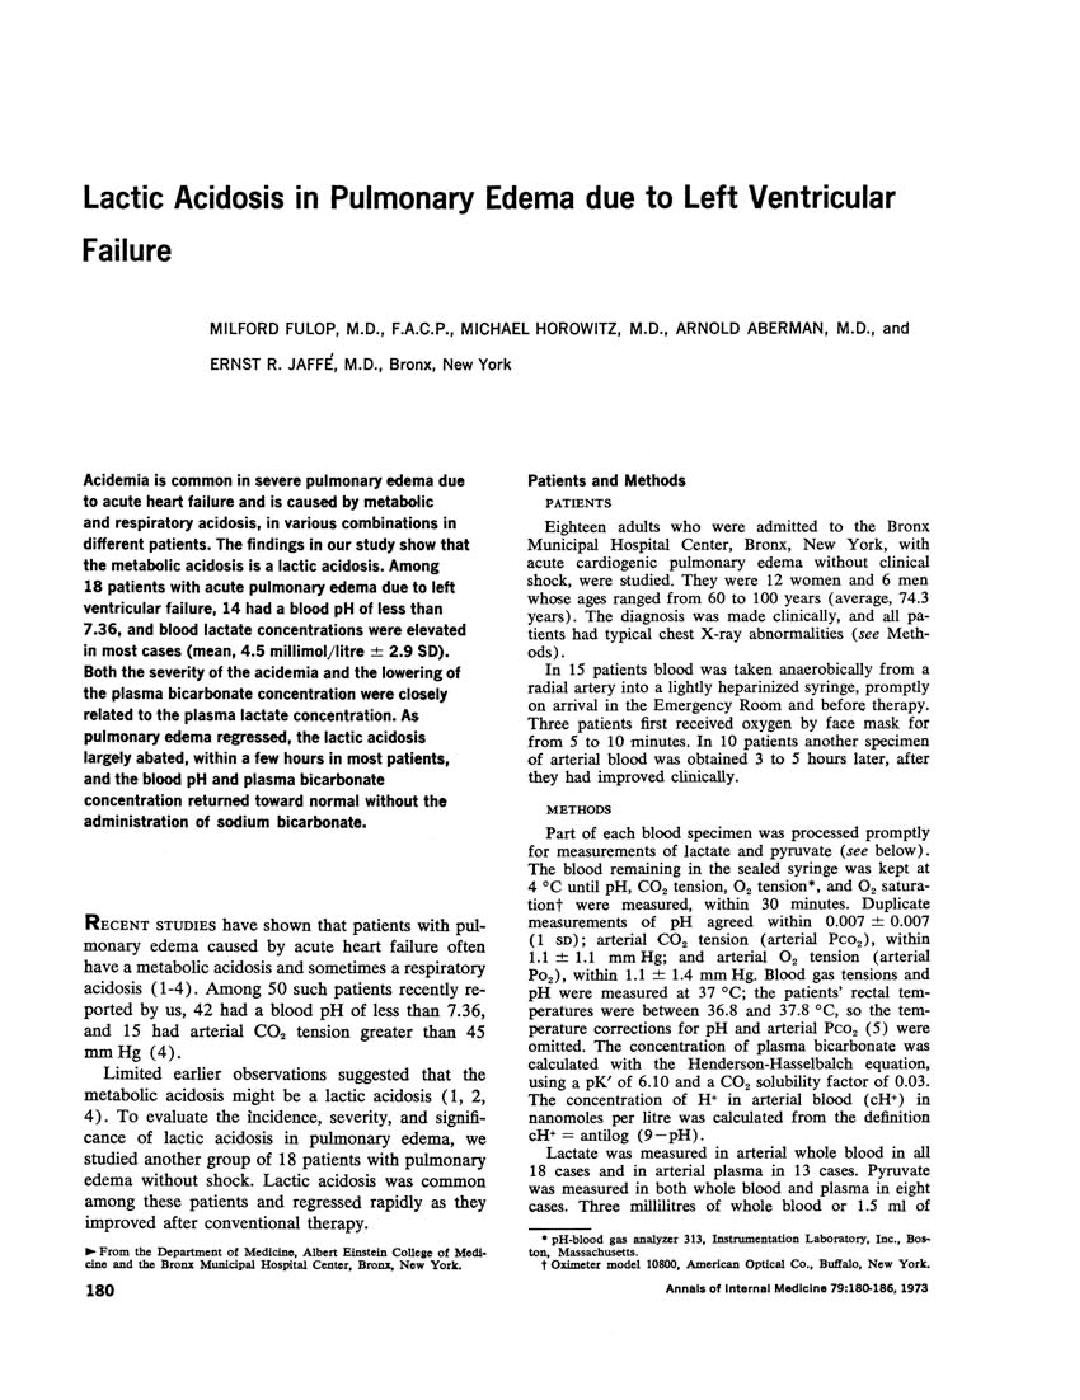 Lactic Acidosis And Heart Failure